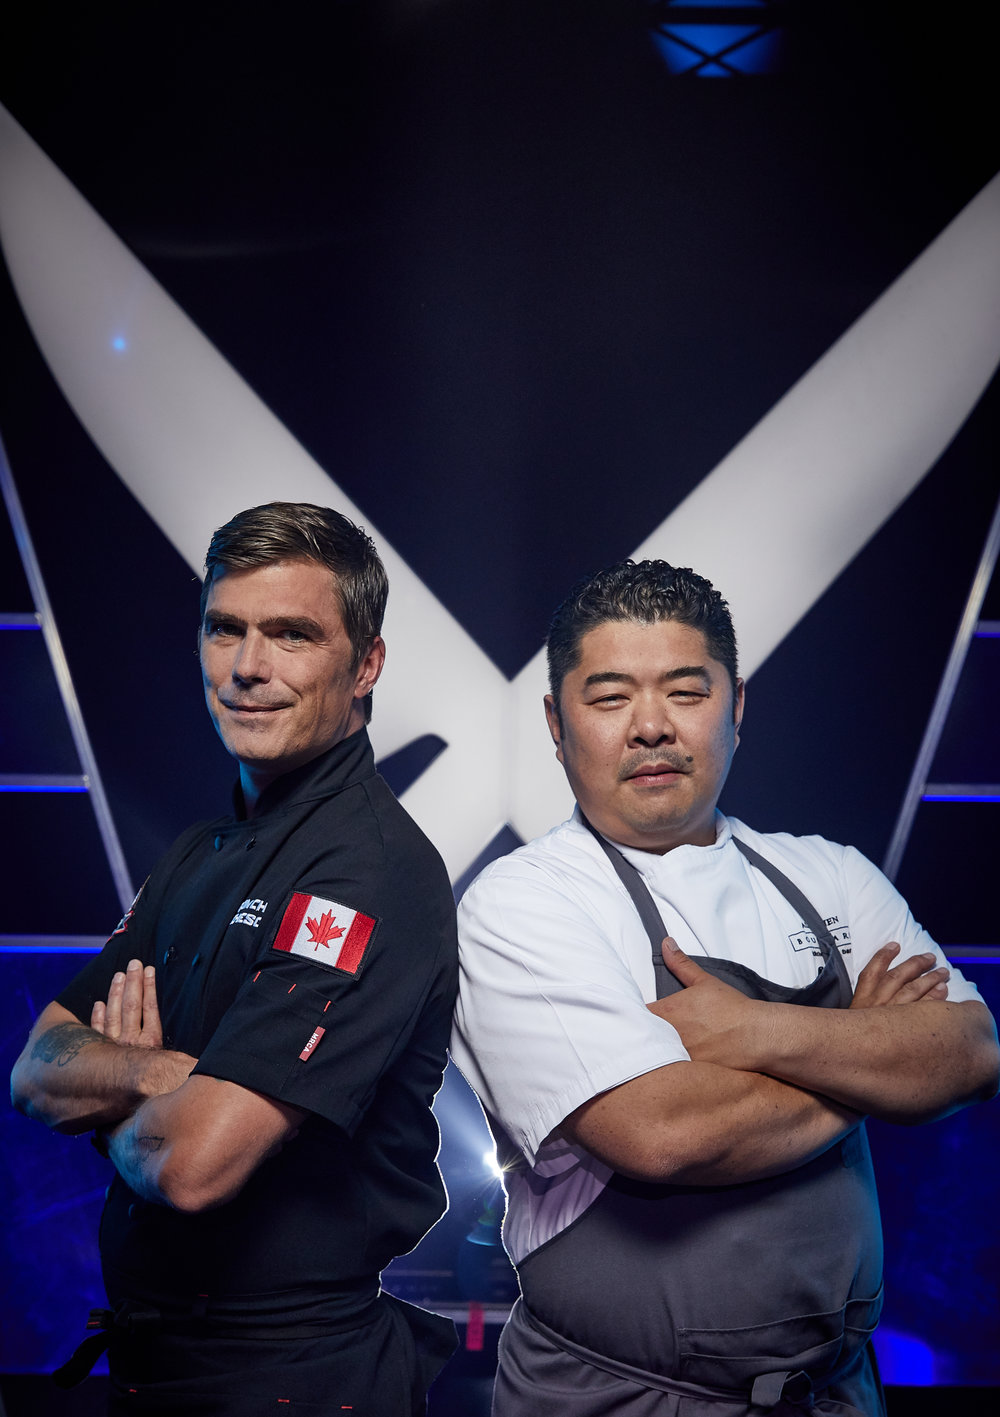 BOULEVARD KITCHEN'S ALEX CHEN TO COMPETE ON THE FOOD NETWORK CANADA'S IRON CHEF CANADA - November 1, 2018Boulevard Kitchen & Oyster Bar Chef Alex Chen will test his culinary mettle against Canadian Iron Chef Hugh Acheson when he steps into Kitchen Stadium on the latest episode of The Food Network Canada's inaugural season of Iron Chef Canada next Wednesday, November 7 at 7 p.m. PST.Chen will have one hour to prepare five dishes comprising a showcase ingredient that is announced at the start of the show. Both competing chefs will then present their dishes to a panel of three celebrity judges that will ascribe points to each chef based on first dish, taste, plating, originality and a surprise 'culinary curveball' ingredient.